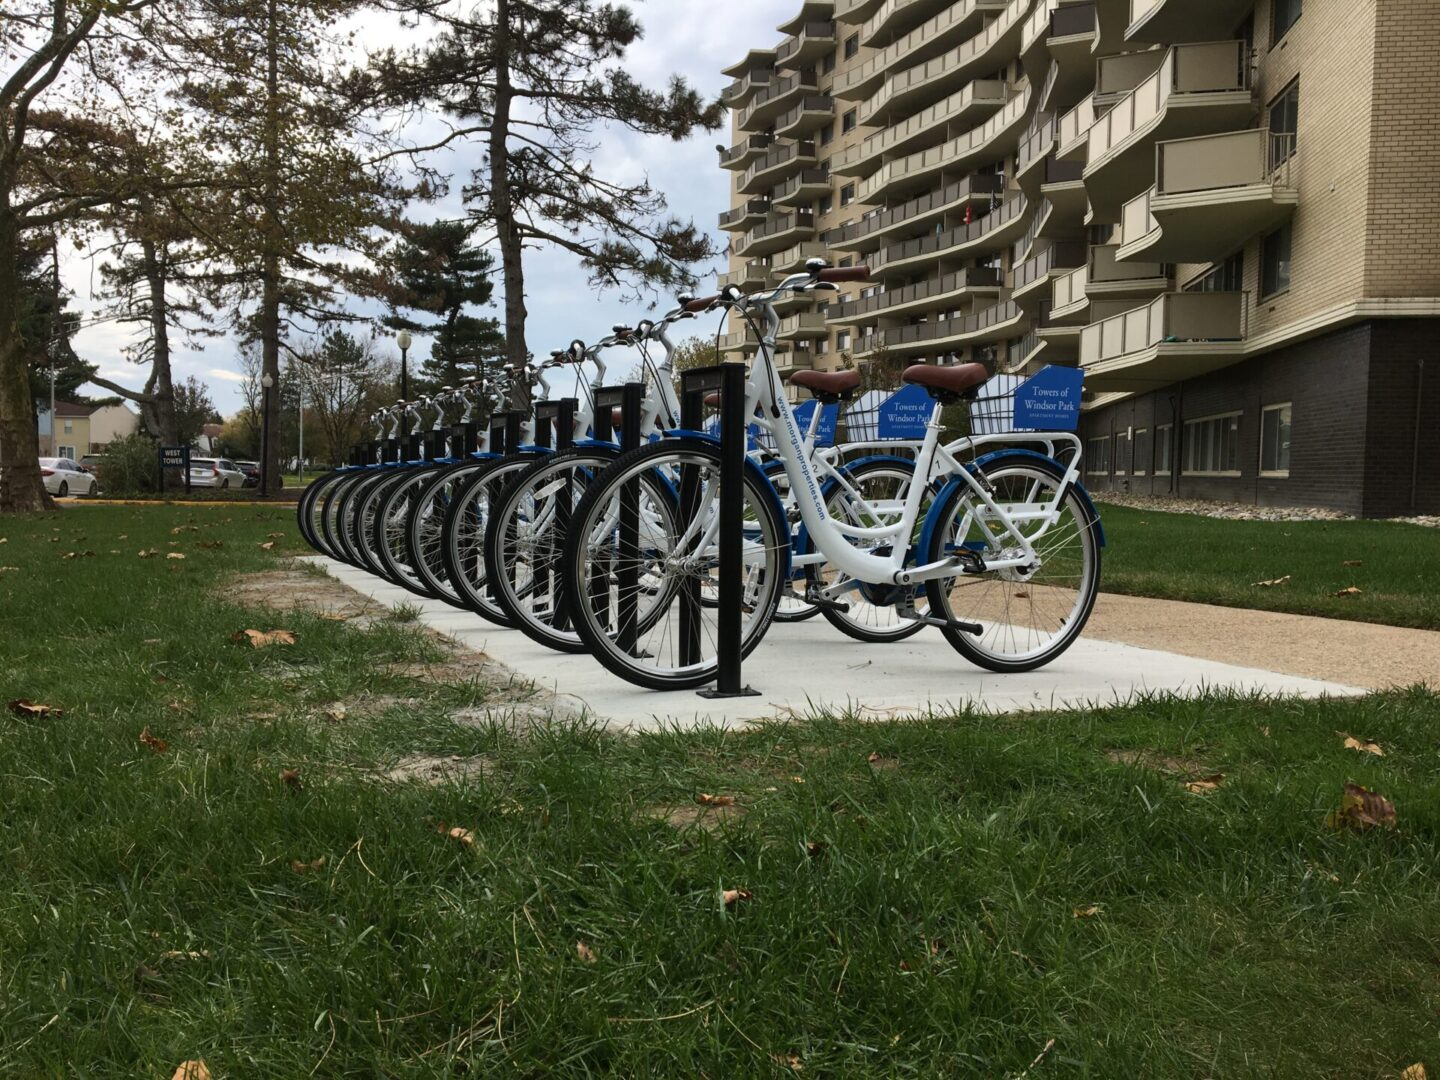 A set of bicycles parked on a white concrete surrounded by grass